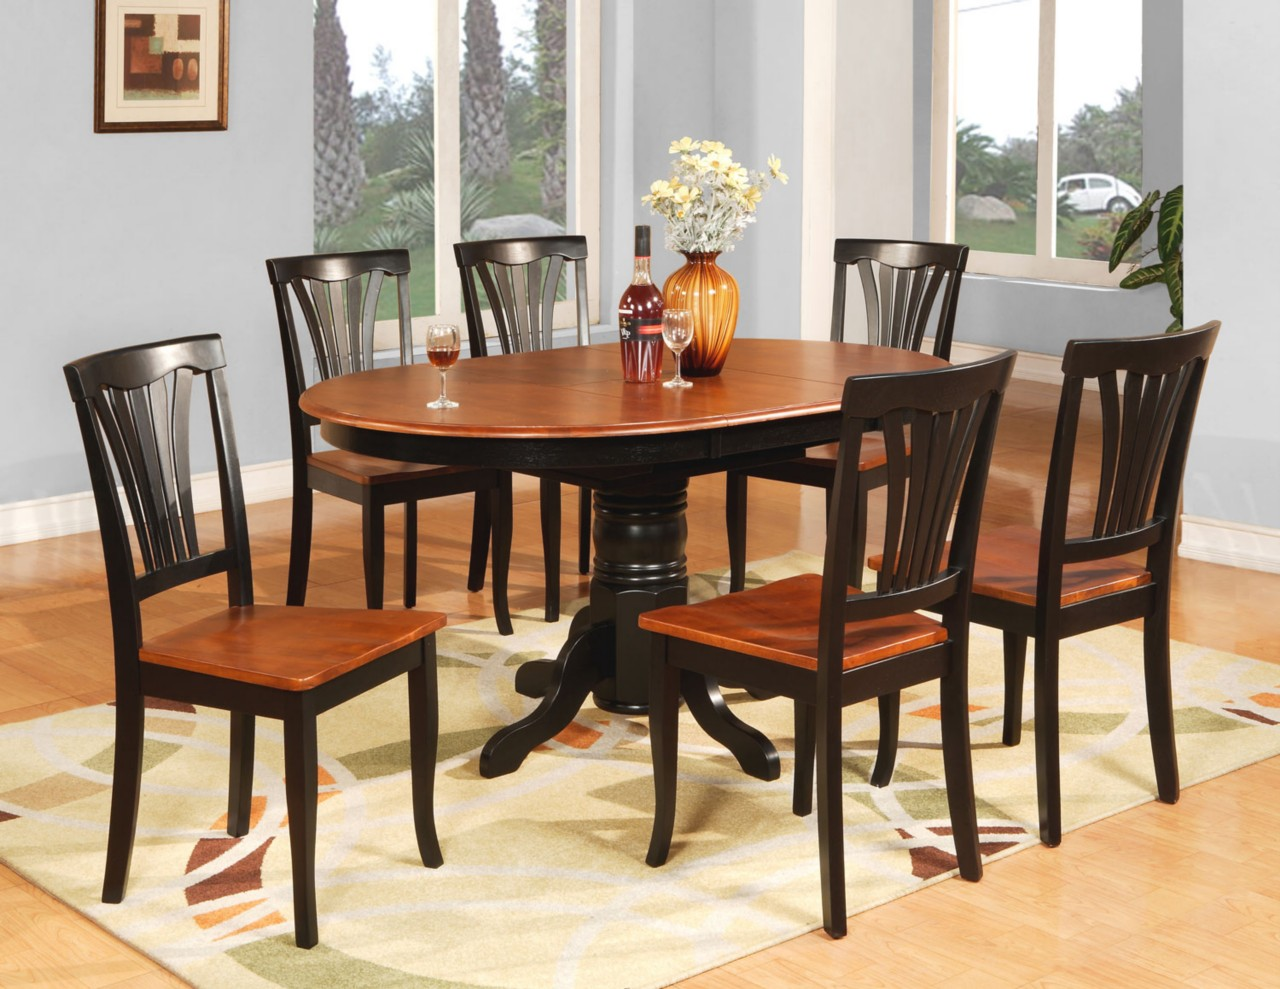 7 pc oval dinette kitchen dining room table 6 chairs ebay for Kitchen table and chairs set